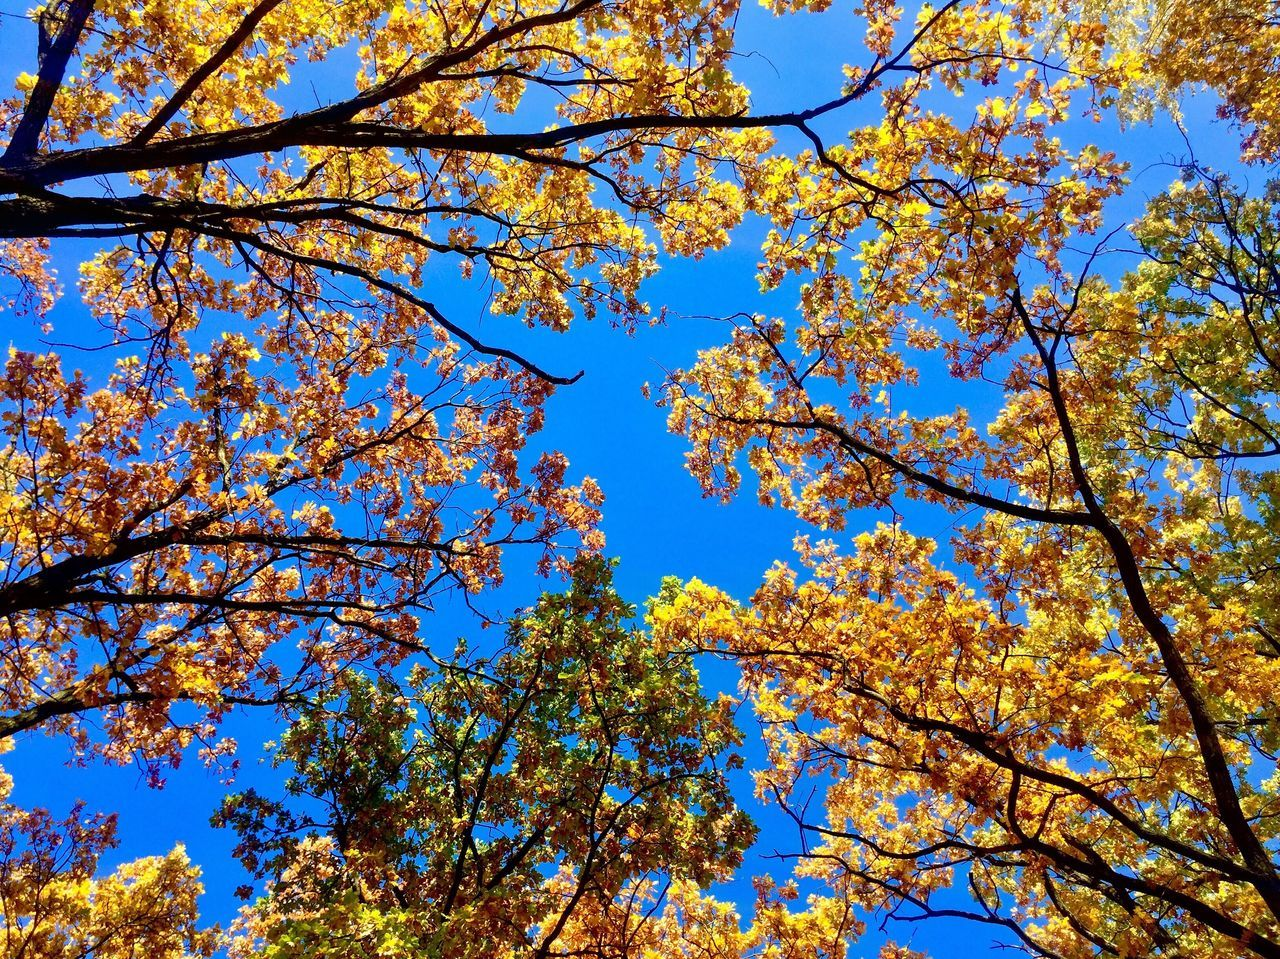 Sunnyday☀️ Sunny Warmautumnday Yellowleafs Low Angle View Backgrounds Autumnbeauty Autumn Collection Polishgoldenautumn Fall Collection Fall Season Fall Colors Fall Beauty Fall Bluesky Clear Sky Look Up The Sky